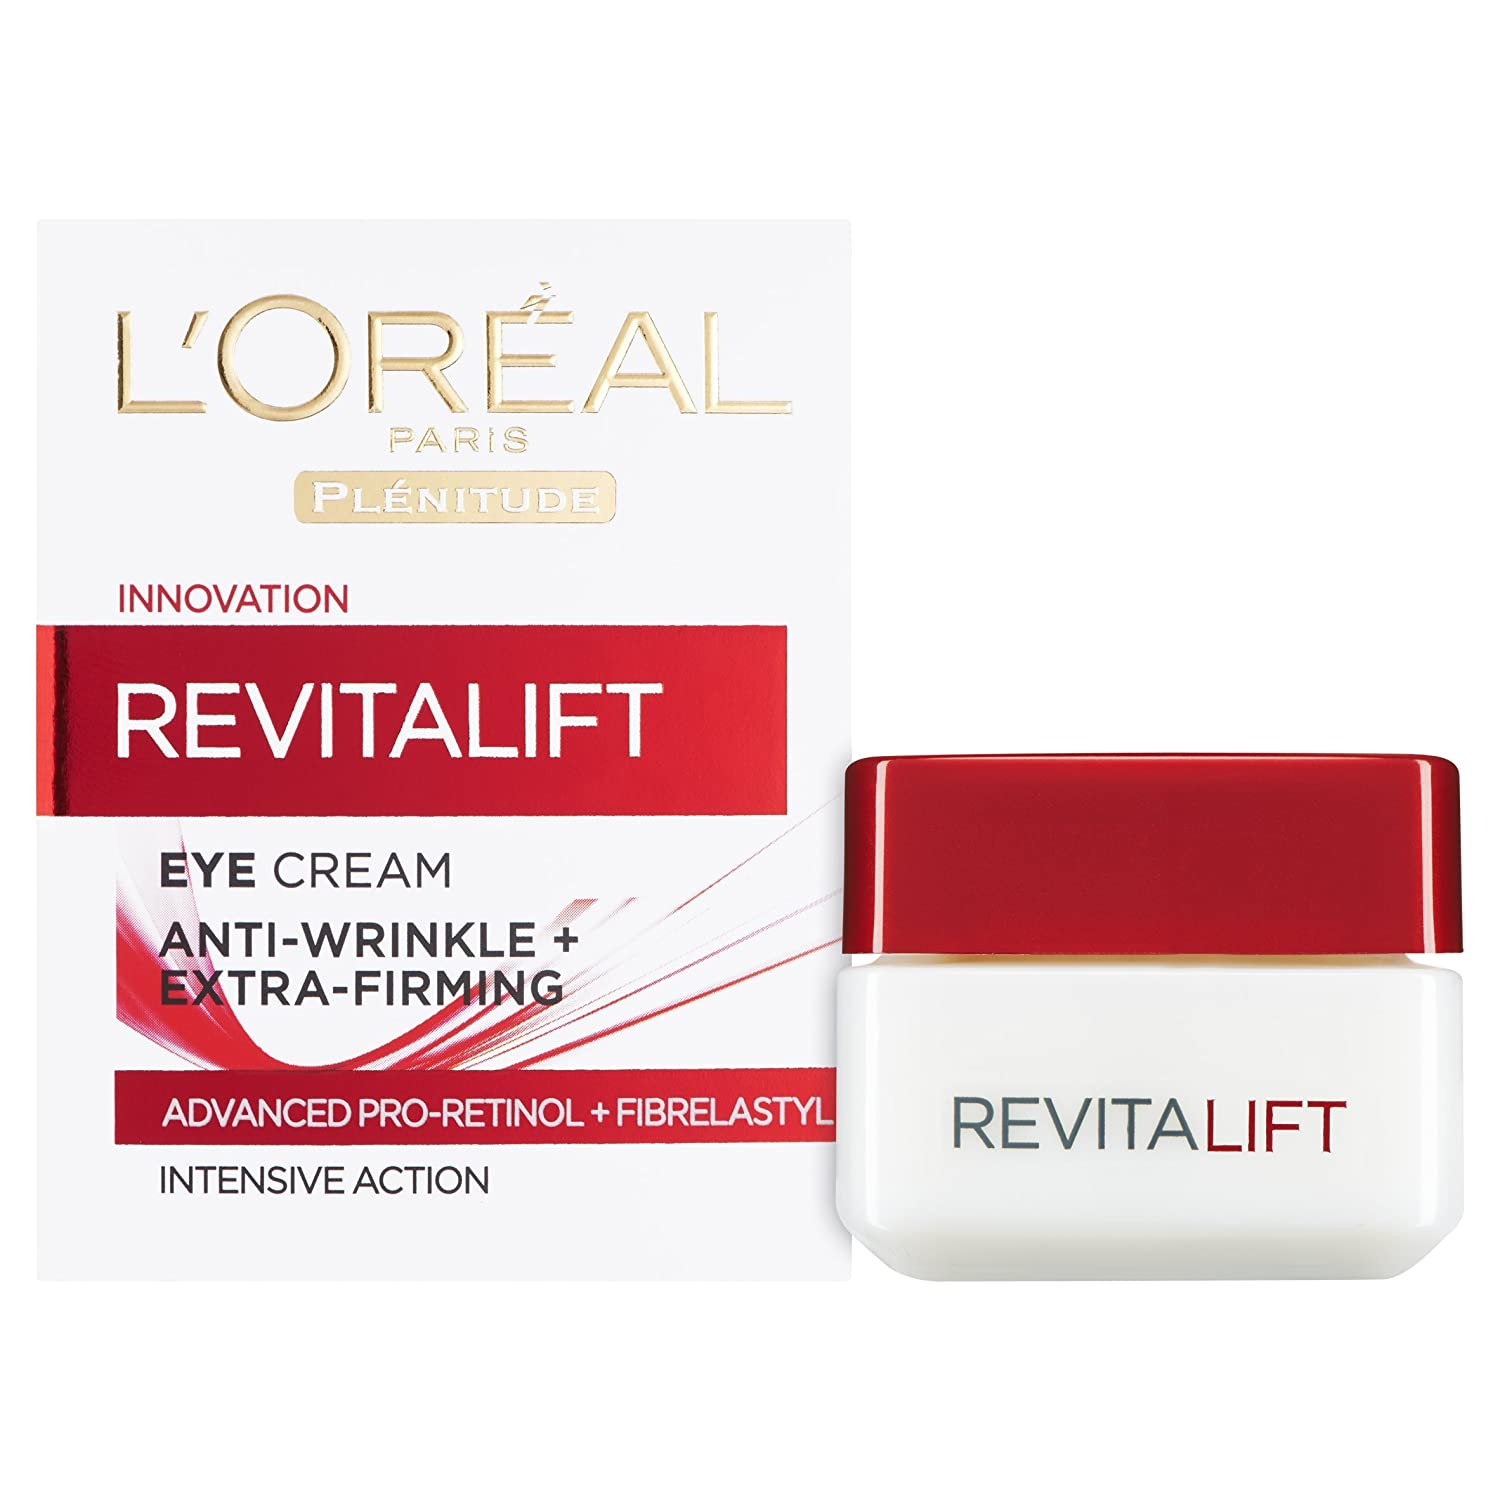 L'Oreal Paris Revitalift Anti Wrinkle + Extra Firming Eye Cream